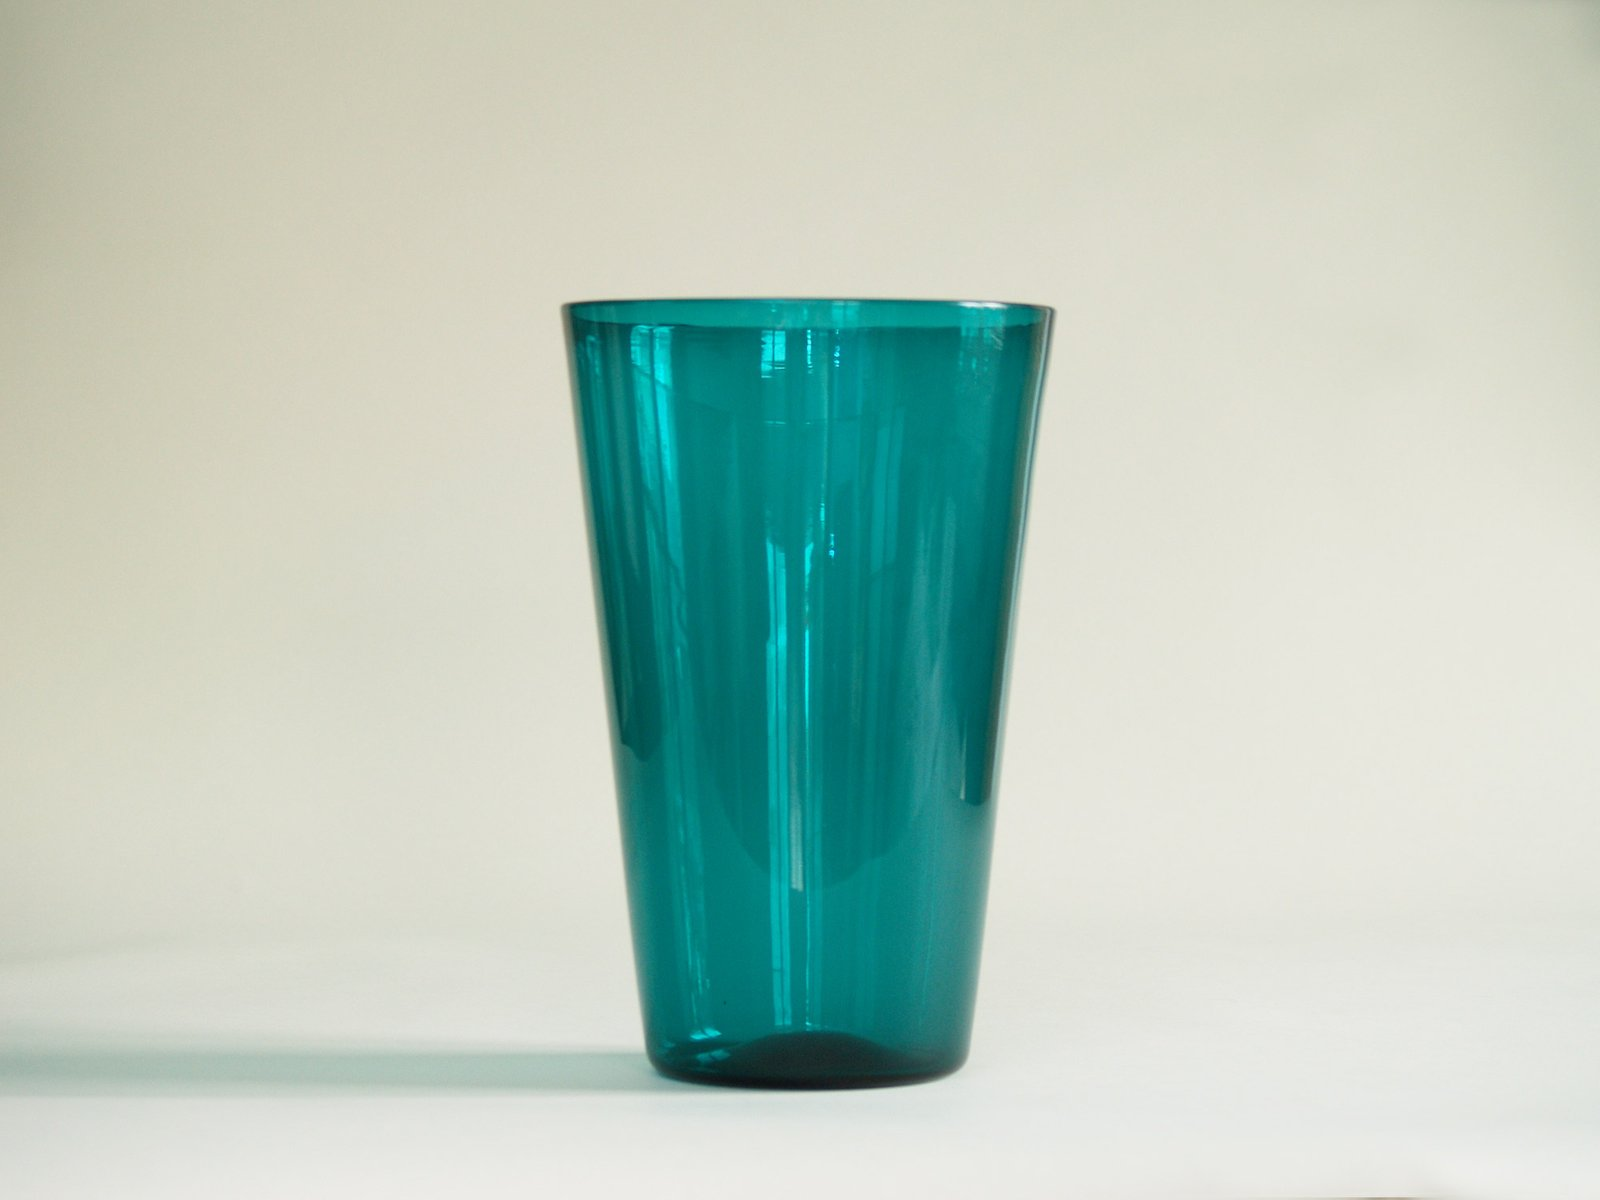 Italian vase by carlo scarpa for venini 1940s for sale at pamono floridaeventfo Image collections